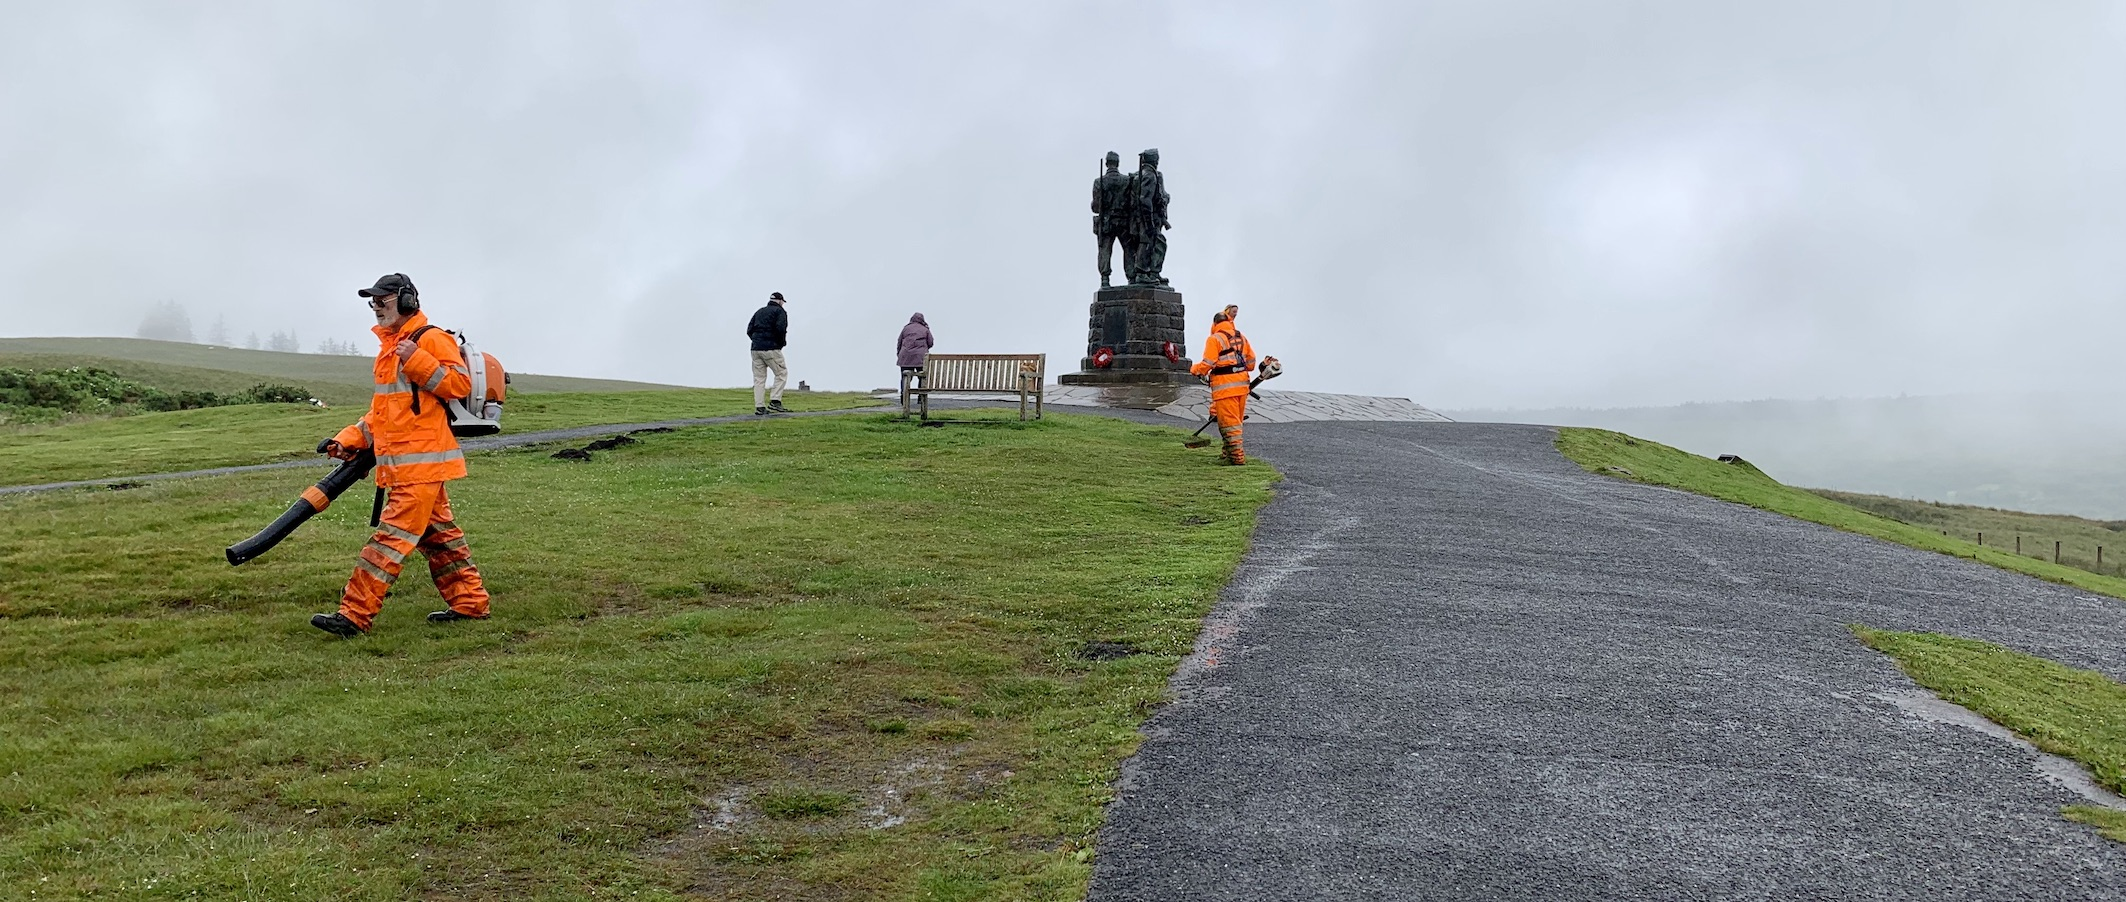 The Commando Memorial Scotland.